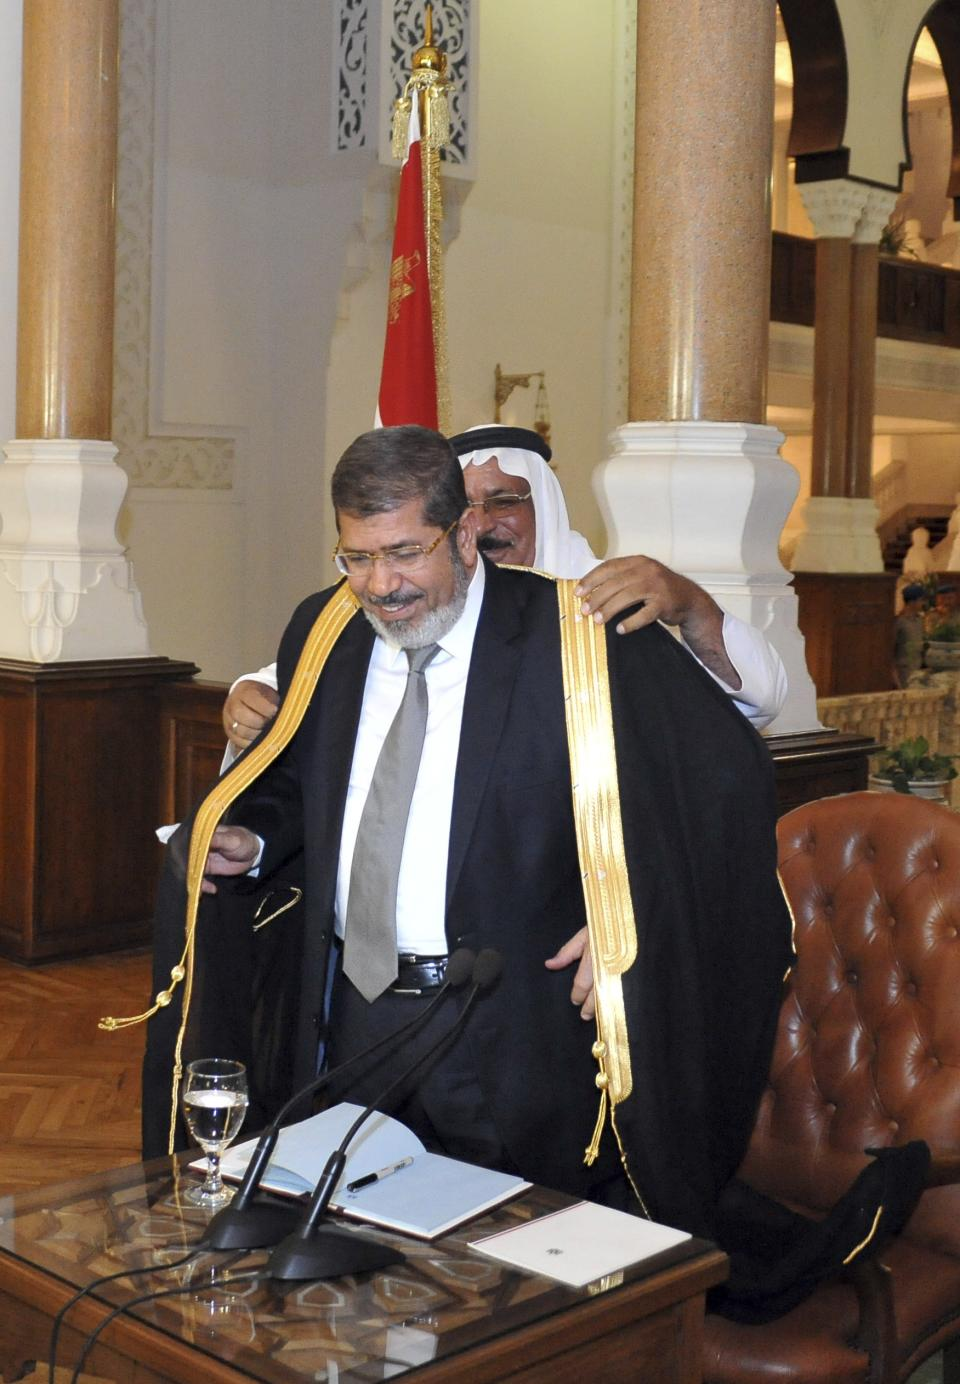 In this photo released by the Egyptian Presidency, President-elect Mohammed Morsi is given a traditional robe during a meeting with political party representatives in Cairo, Egypt, Thursday, June 28, 2012. (AP Photo/Egyptian Presidency)